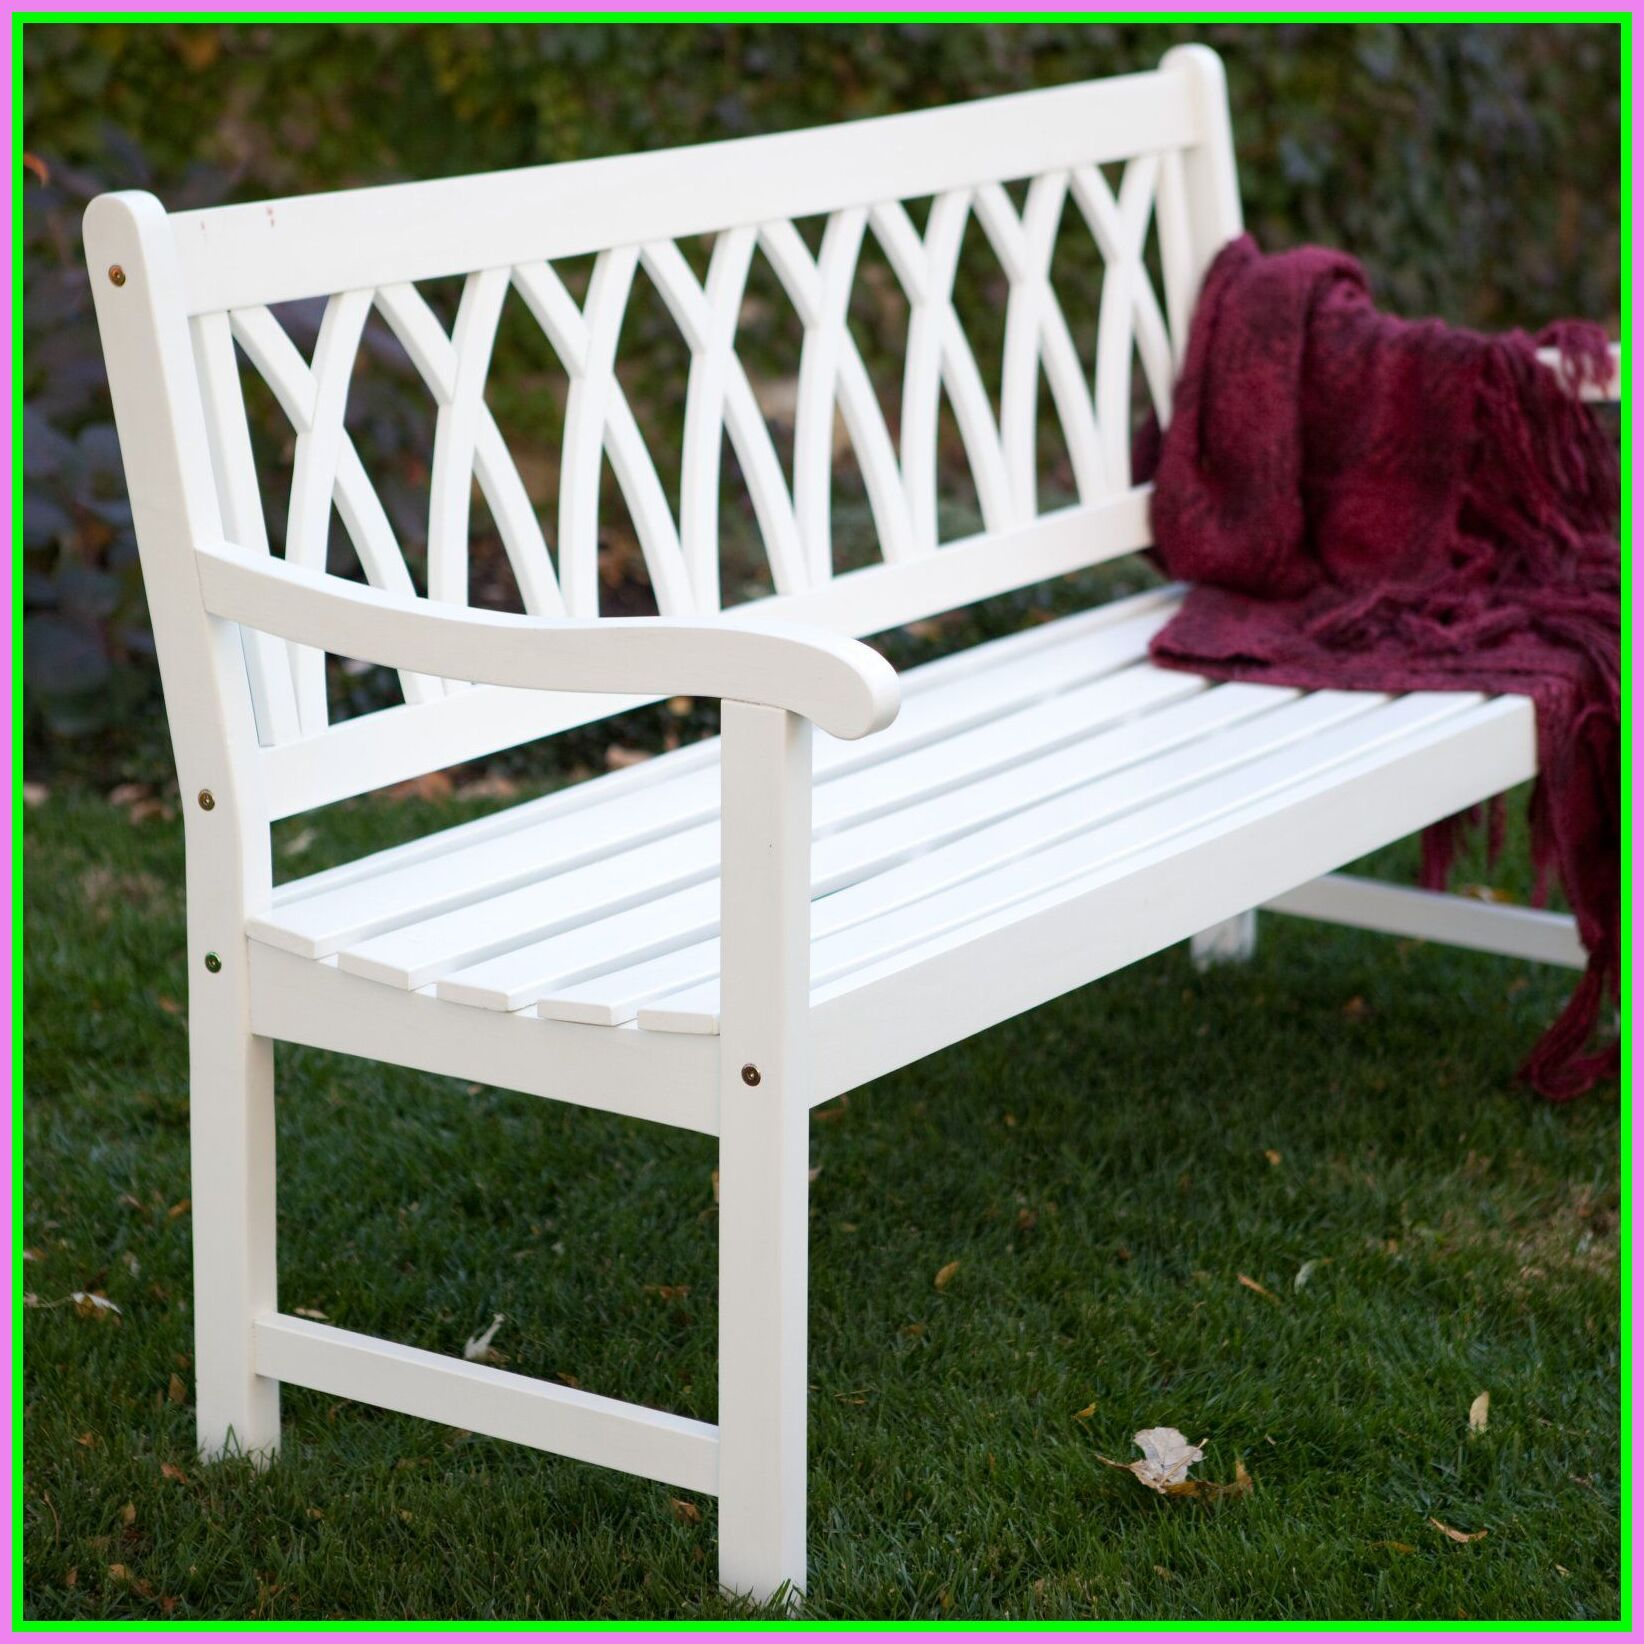 109 Reference Of White Bench Seat Outdoor In 2020 Outdoor Garden Bench Wooden Garden Benches White Garden Bench